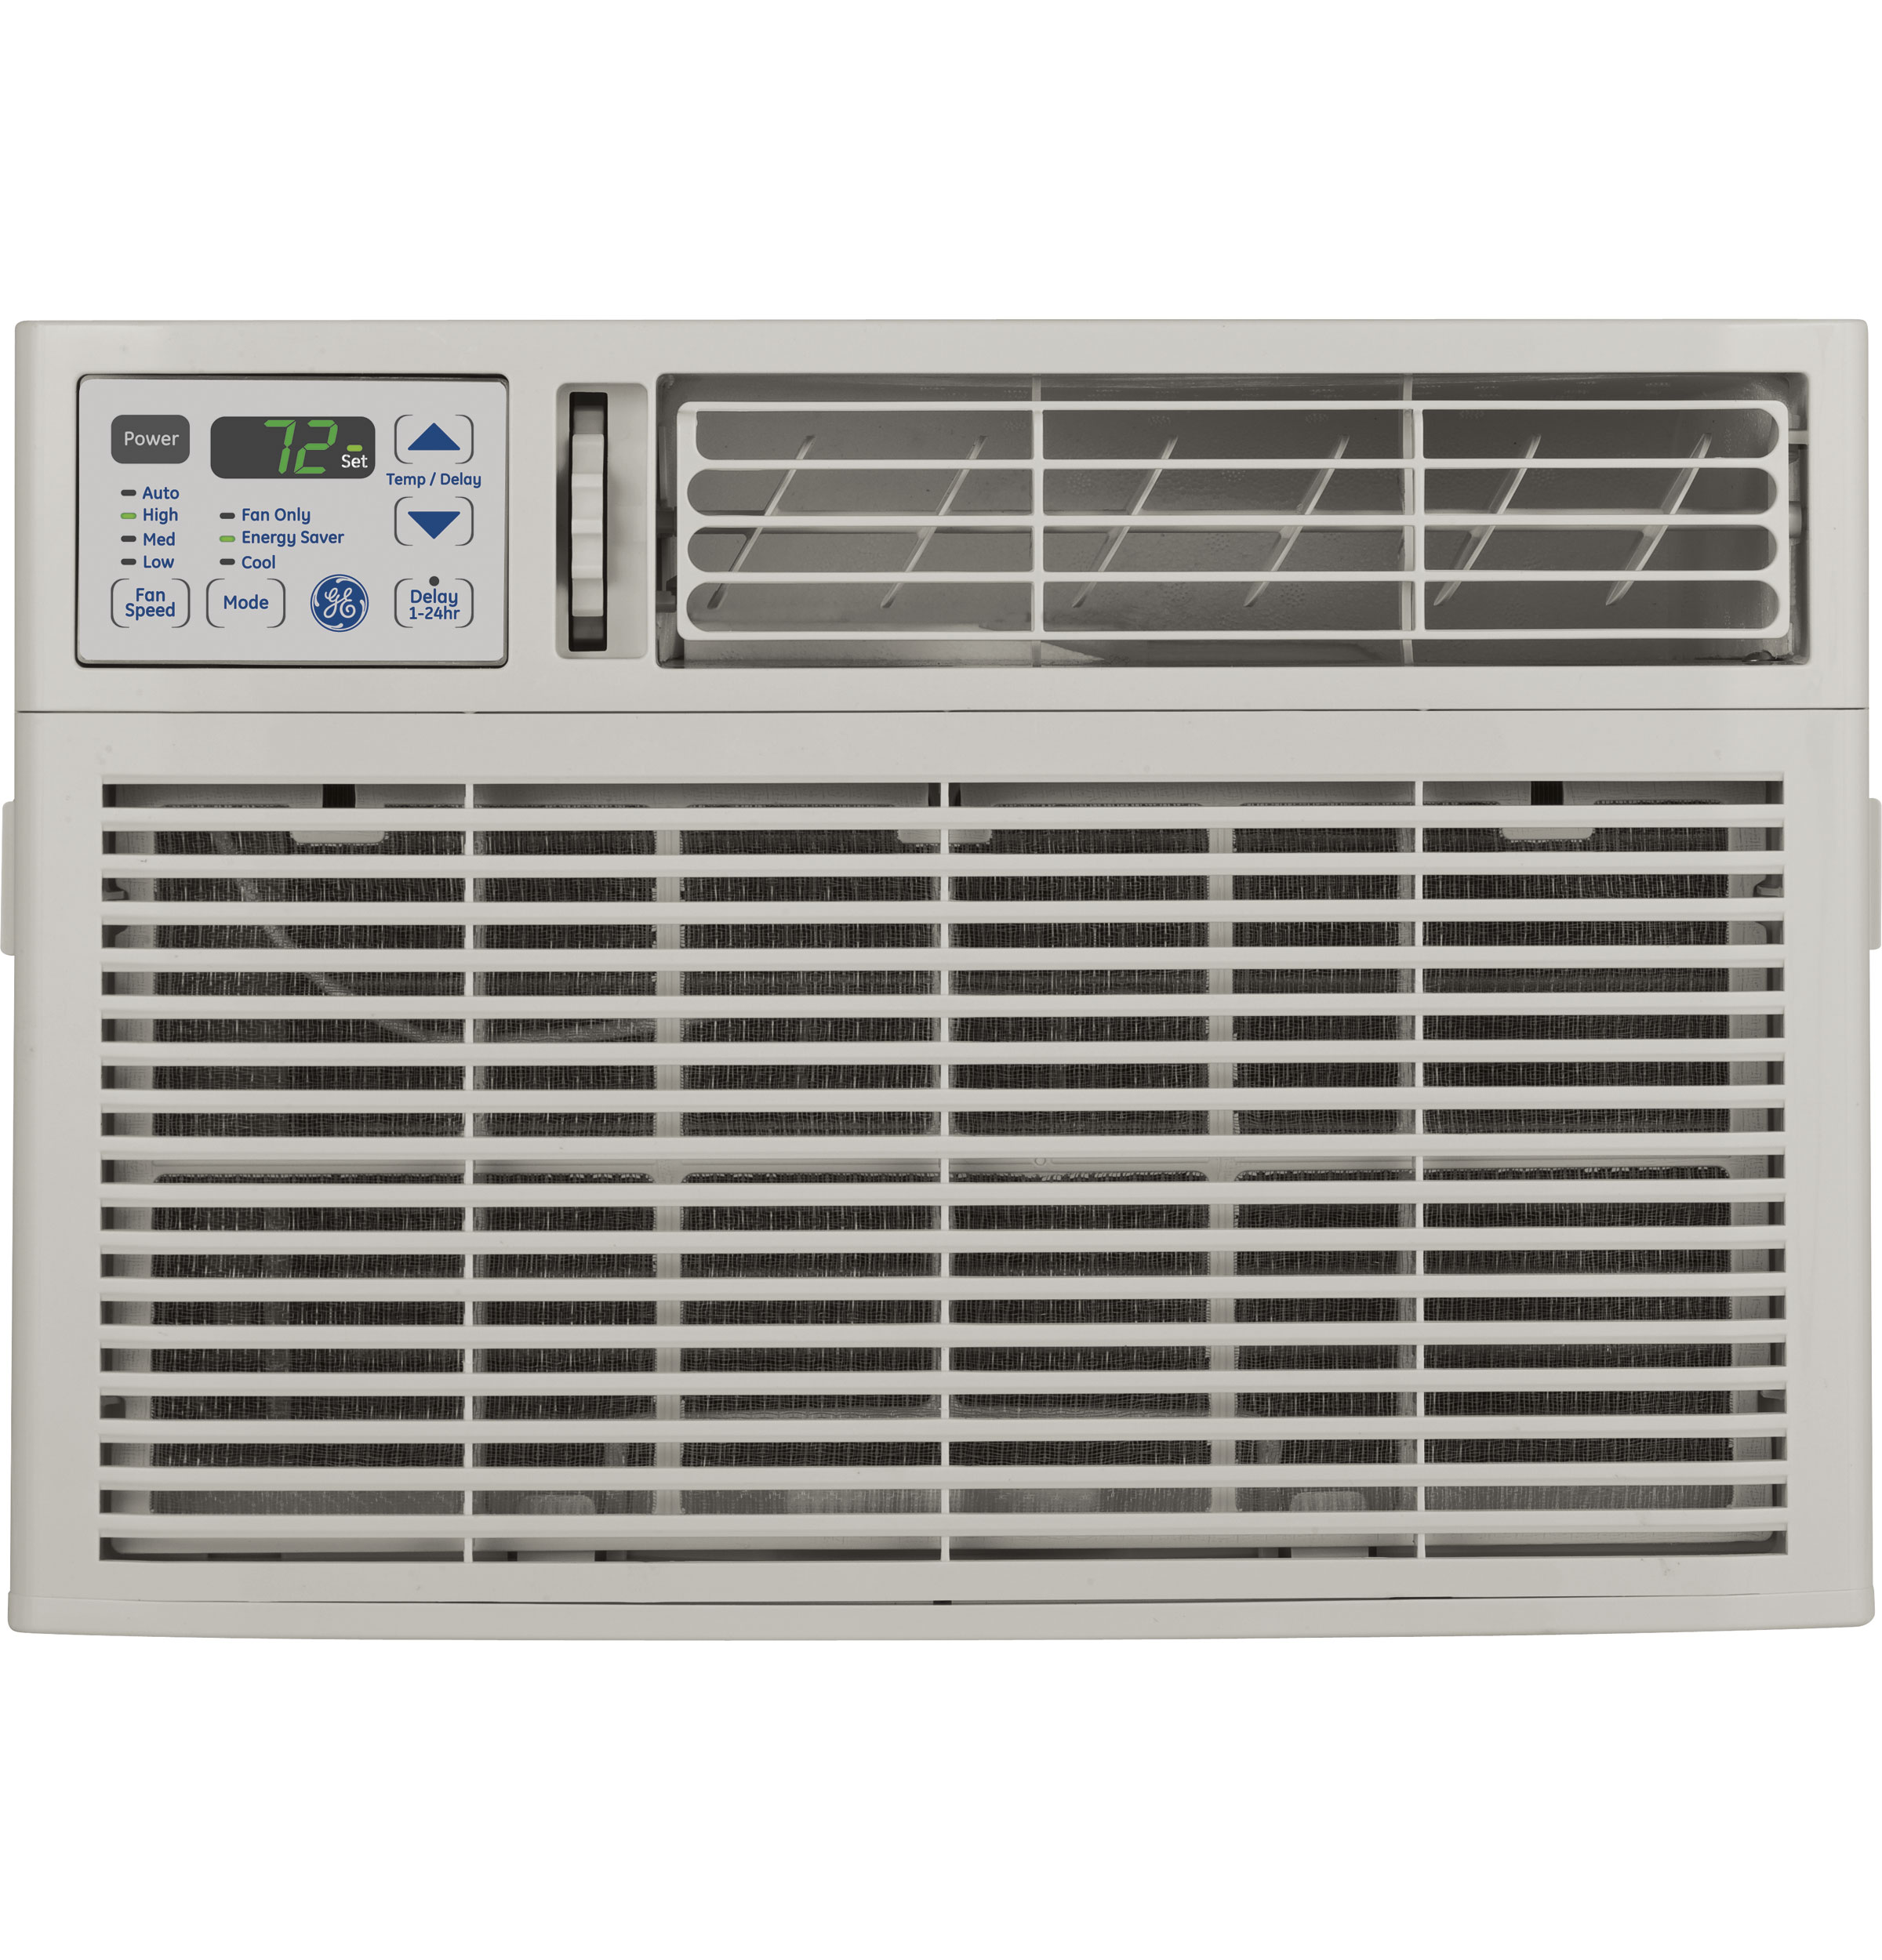 Brand: GE Model: AEN08LQ Style: 8 000 BTU Room Air Conditioner #1E4179